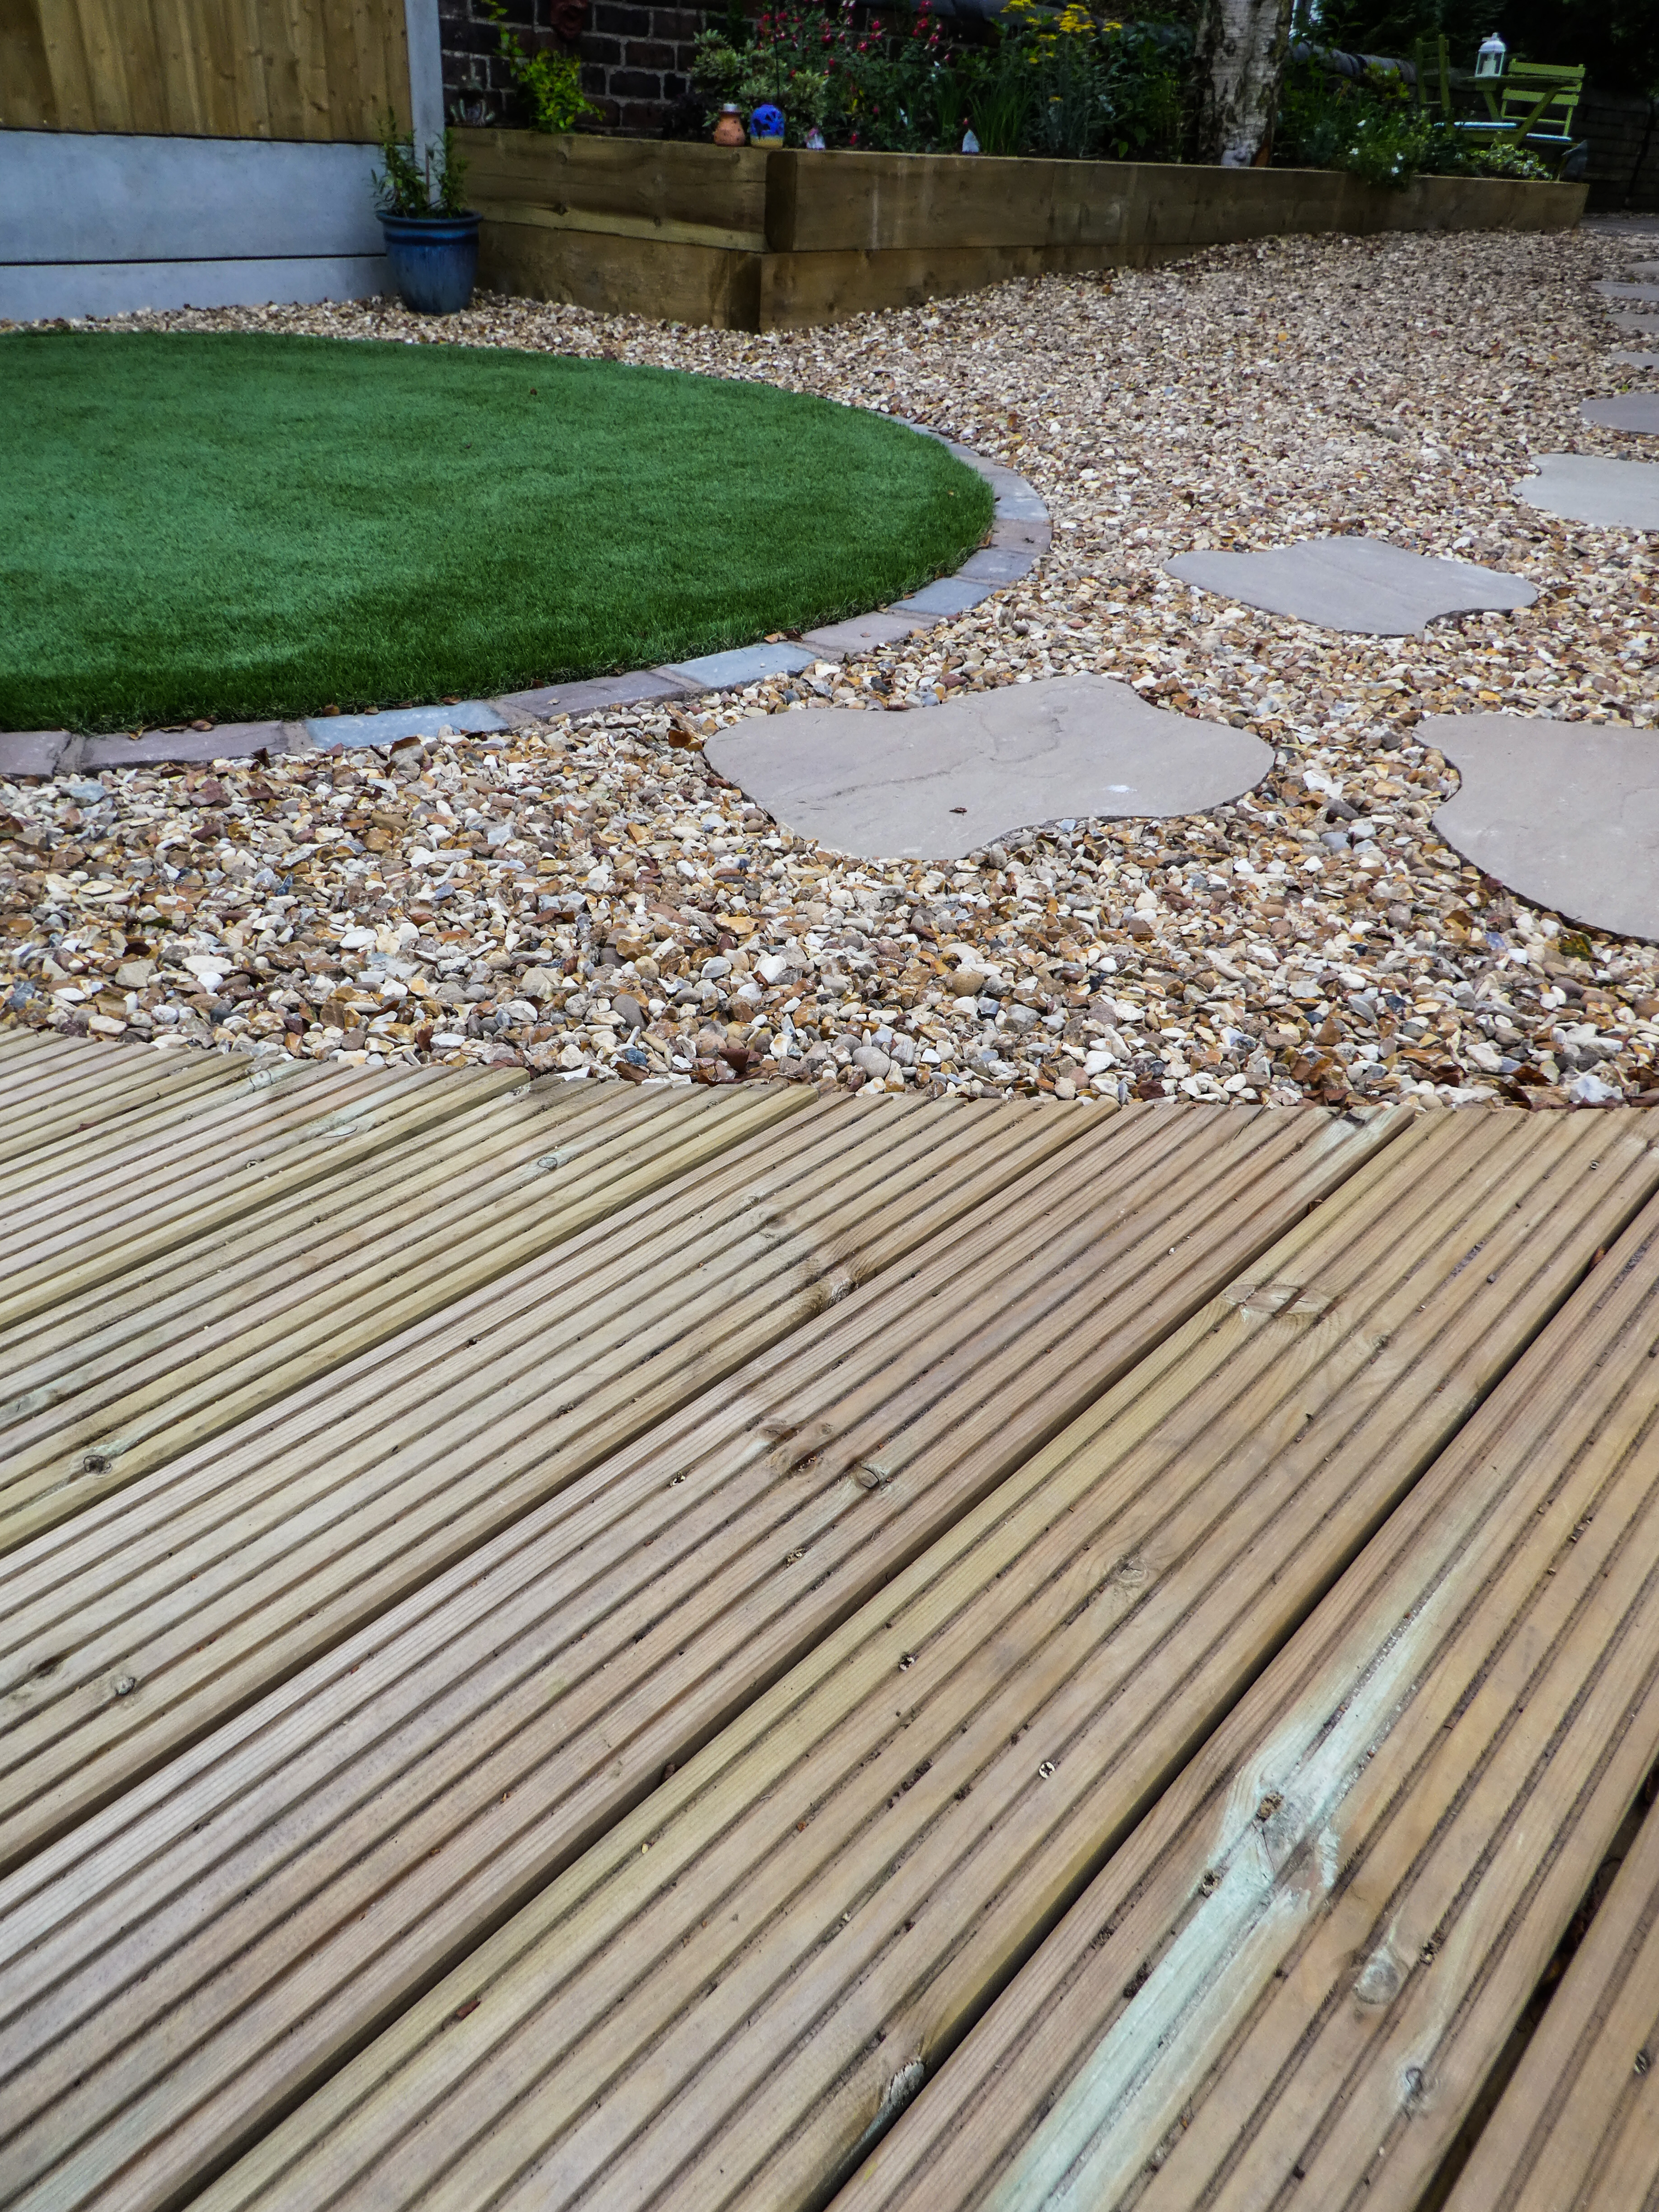 Landscape Gardener in Cheshire - Decking, Stepping Stone in Gravel area and turfing